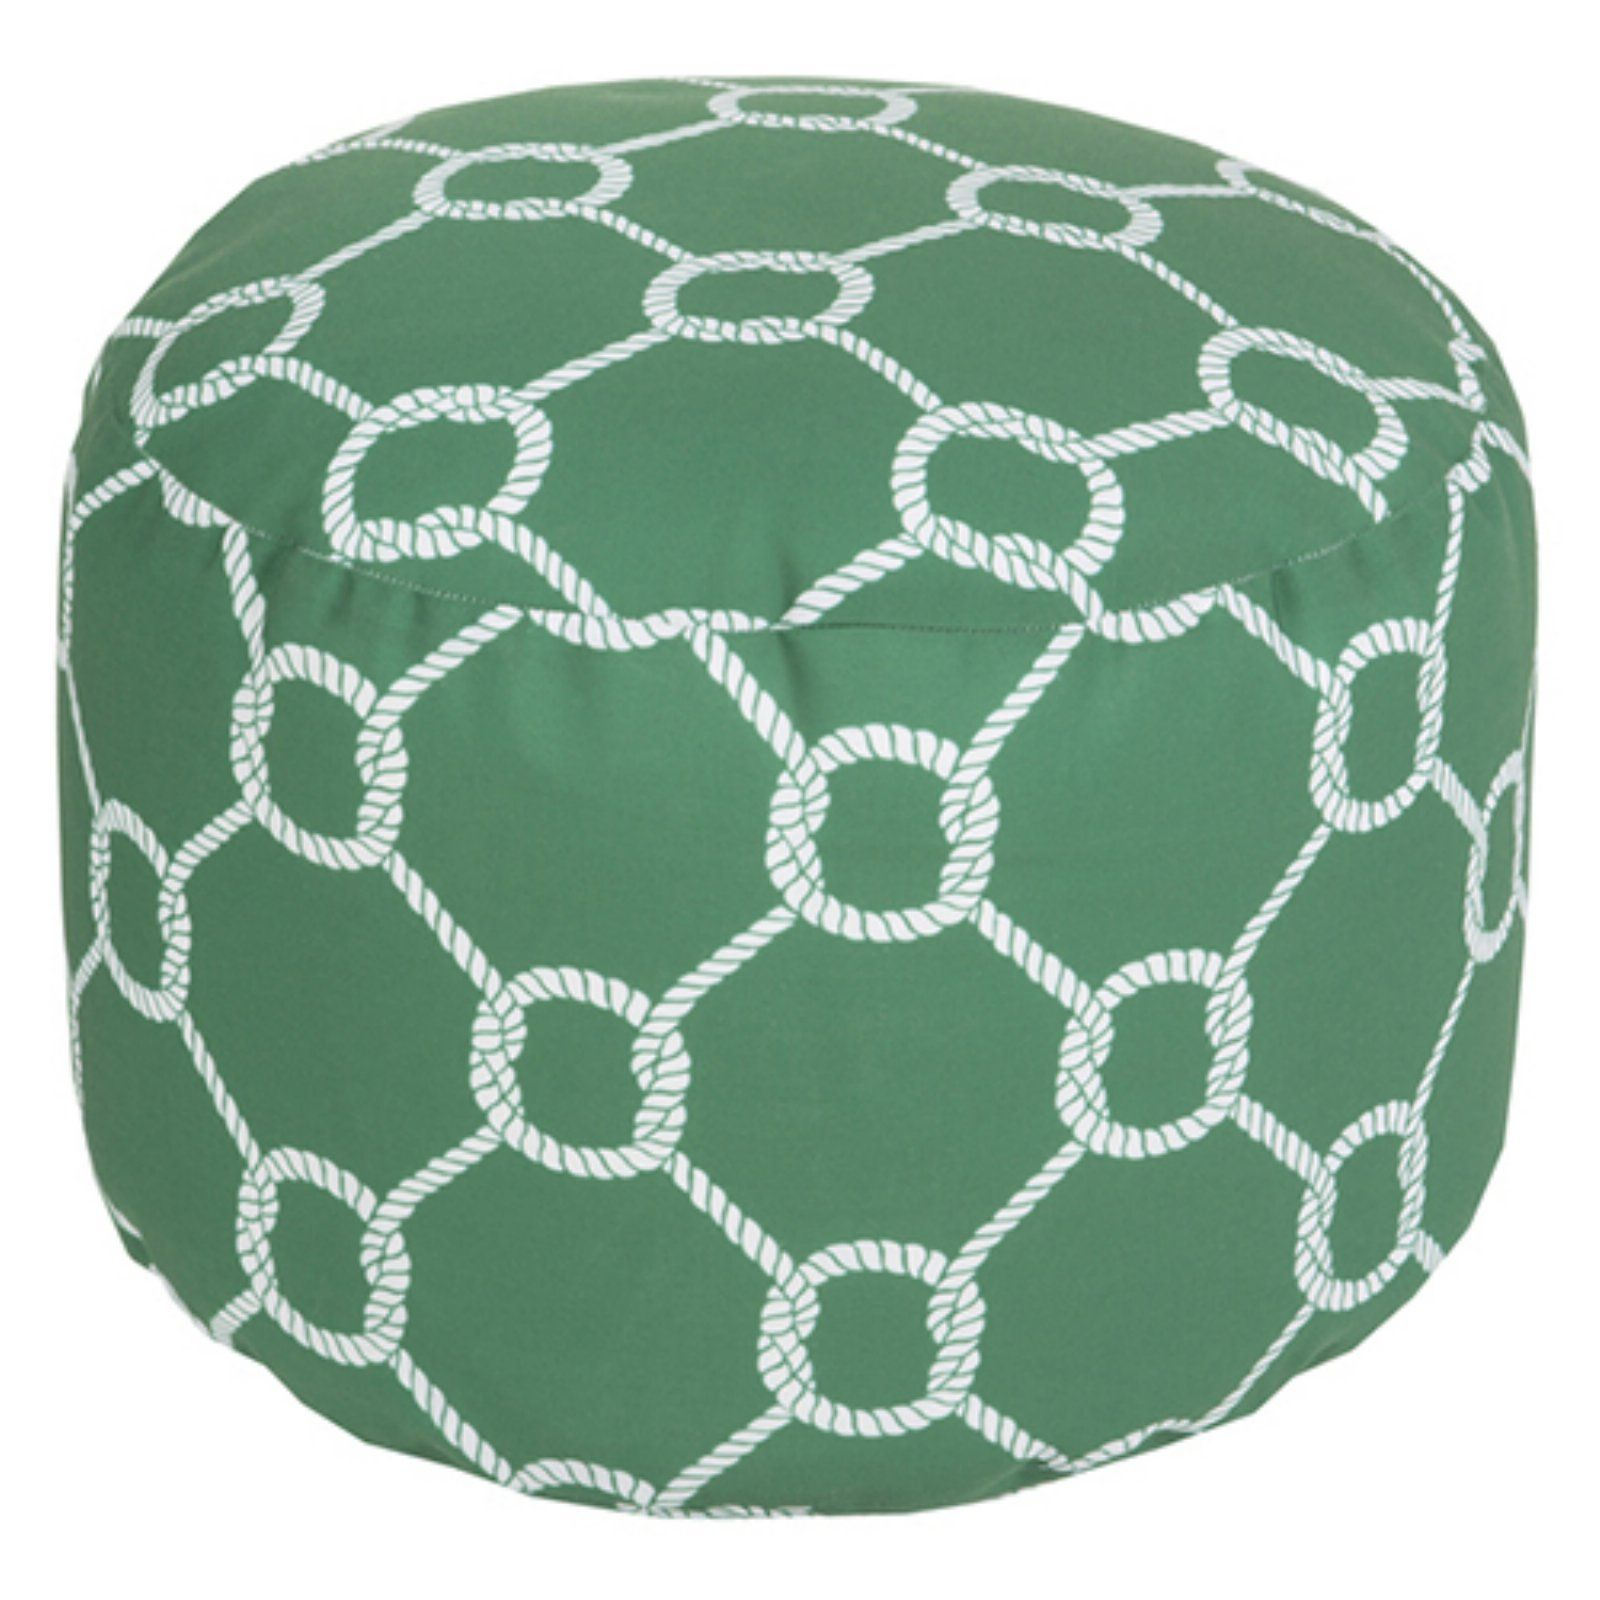 Surya 20 X 20 In Outdoor Rope Round Pouf Ash Gray Outdoor Pouf